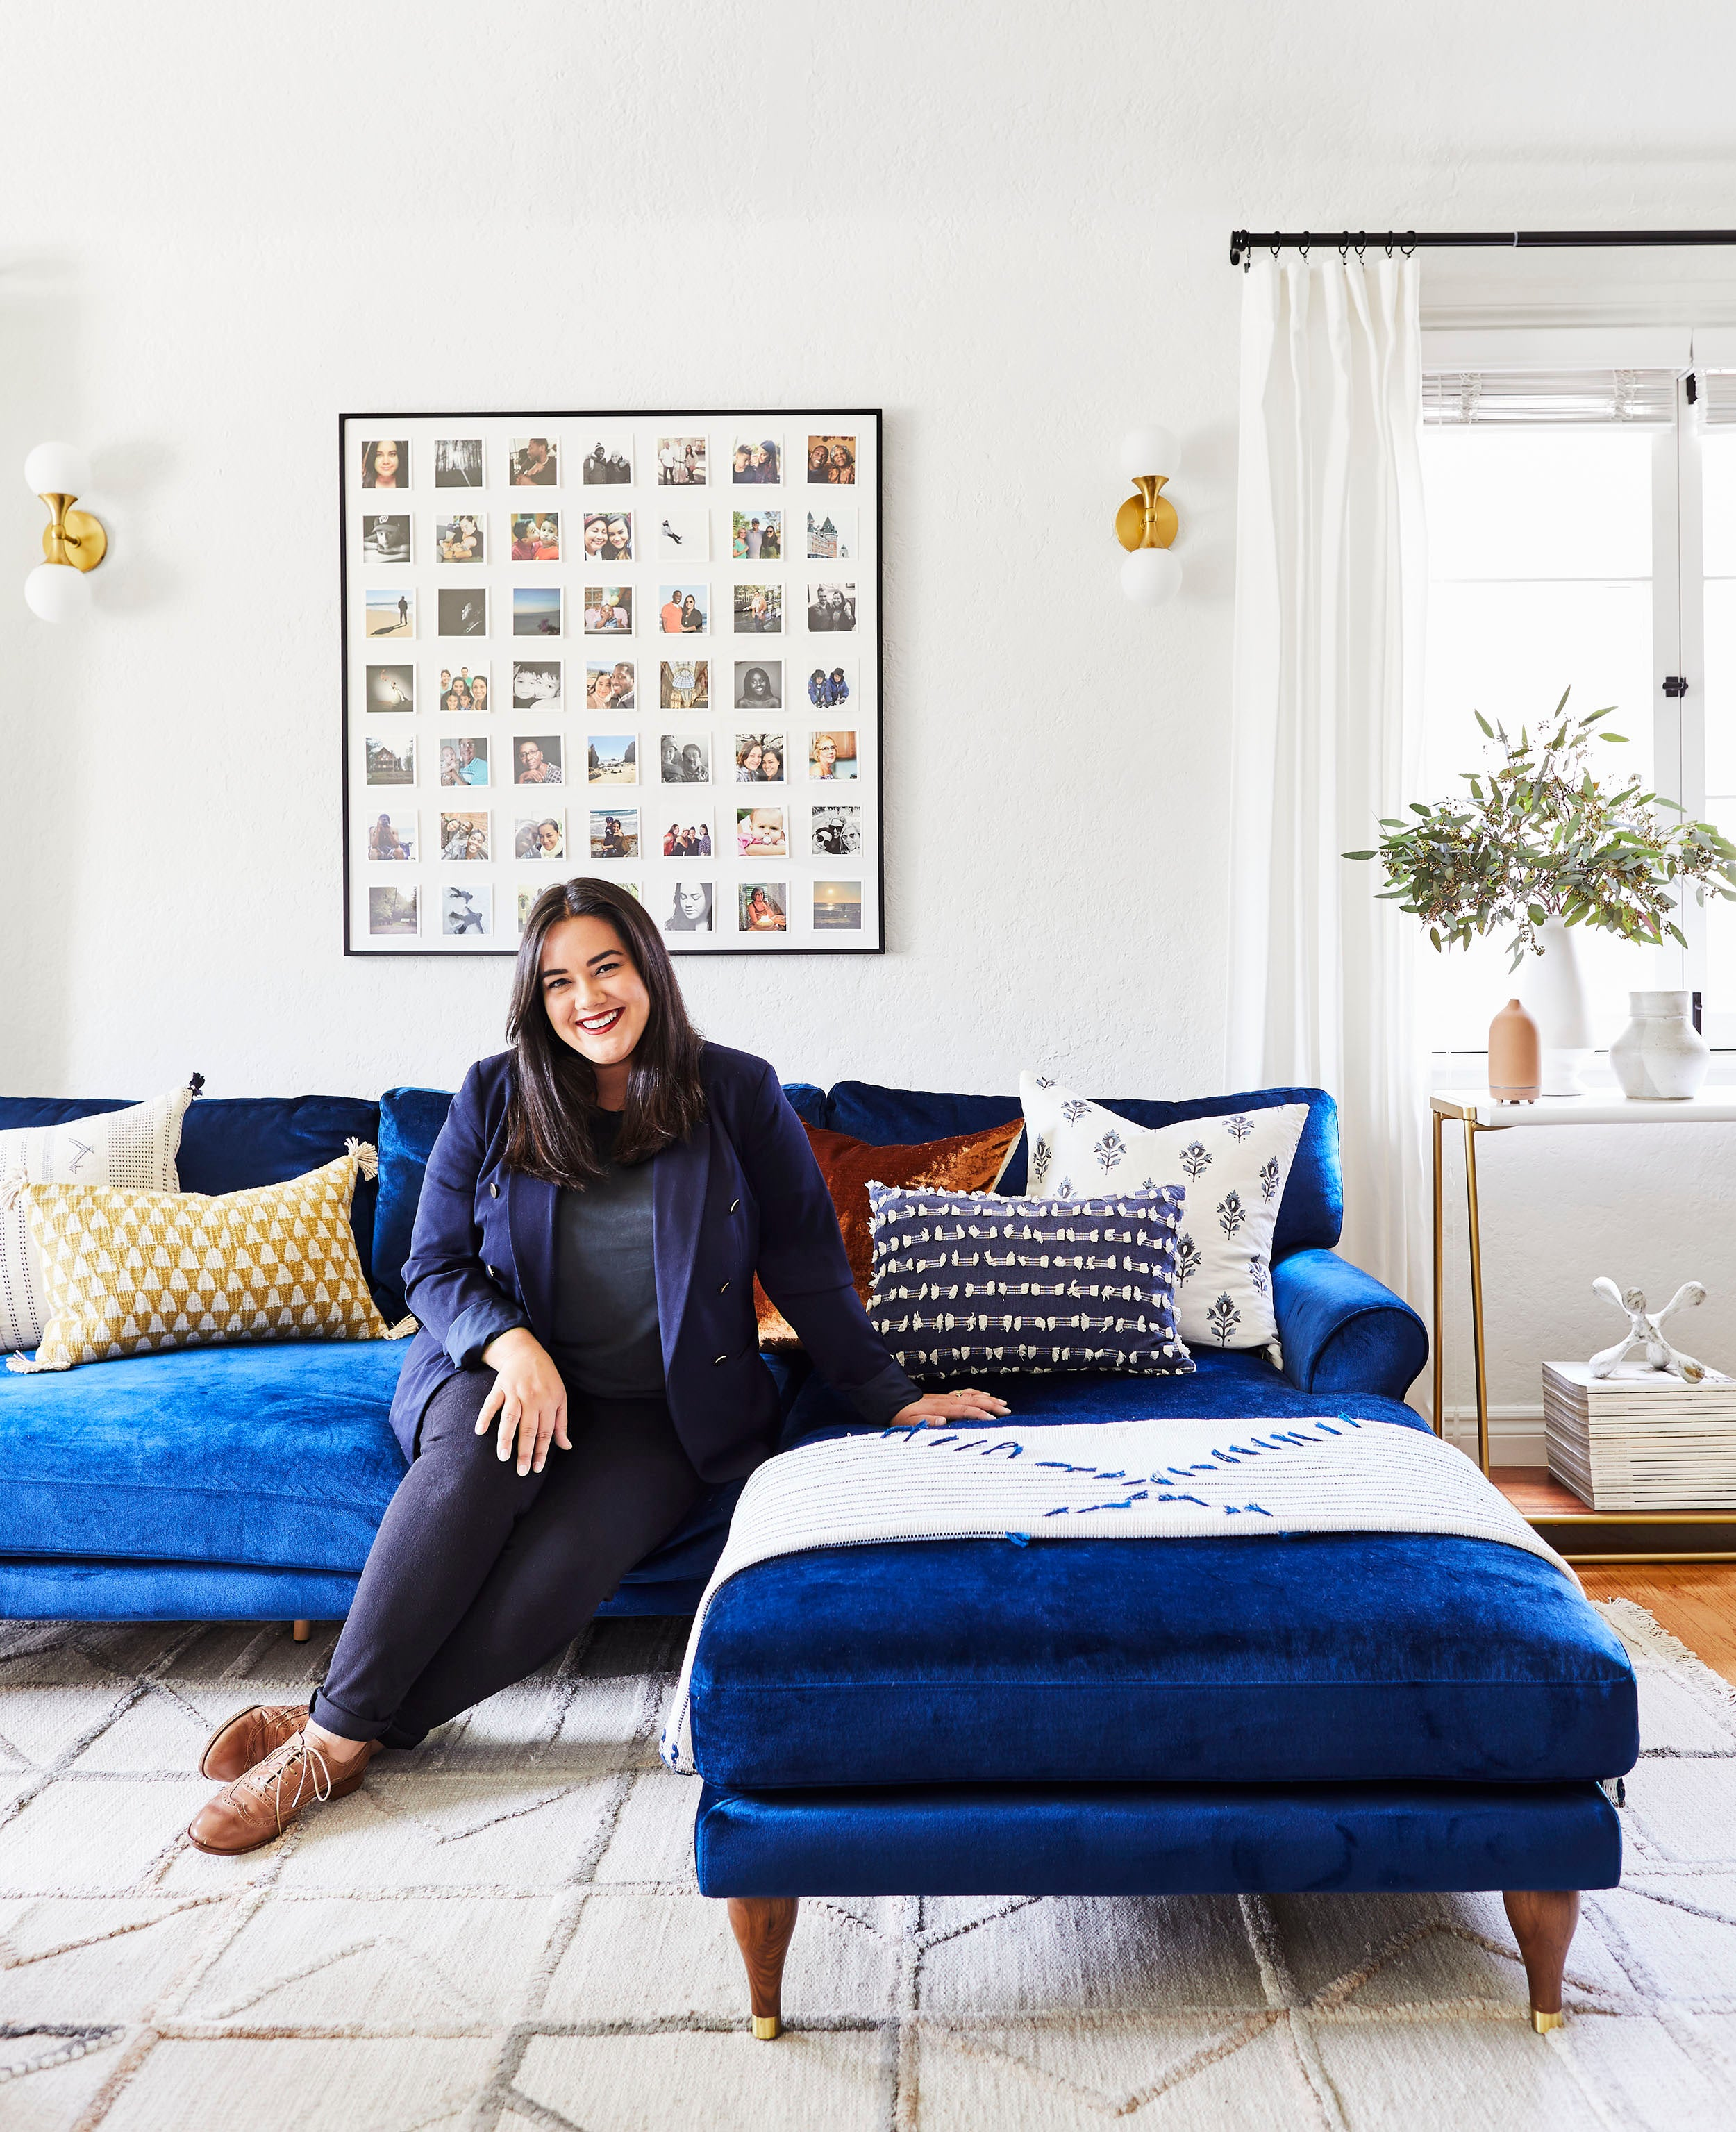 Arlyn Hernandez's Rental Apartment Is Full of Bold Moments